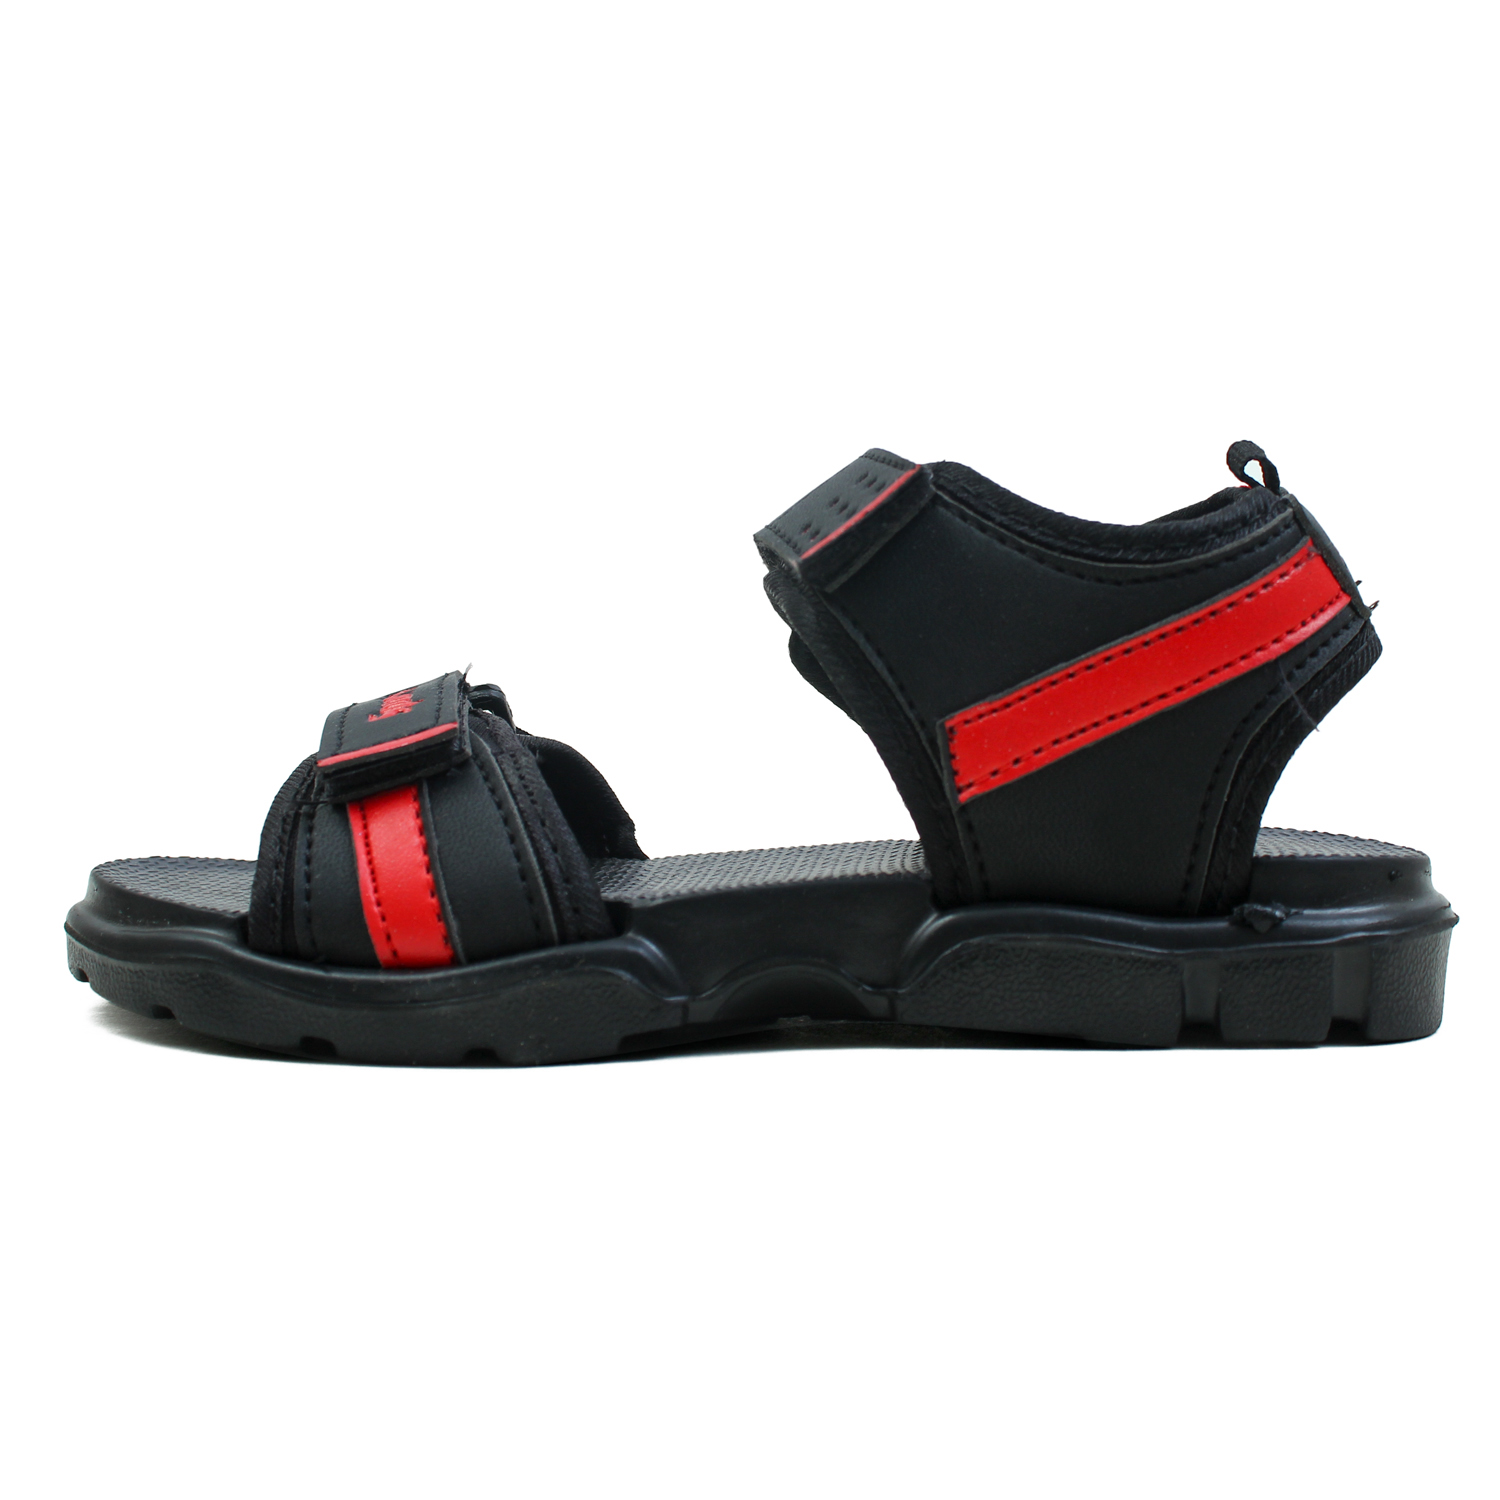 Foot Trends Rascal 2 BK RD Stylish & Trendy Casual Sandal For Kids (4-5) (Red, 4-5, 4 PAIR)